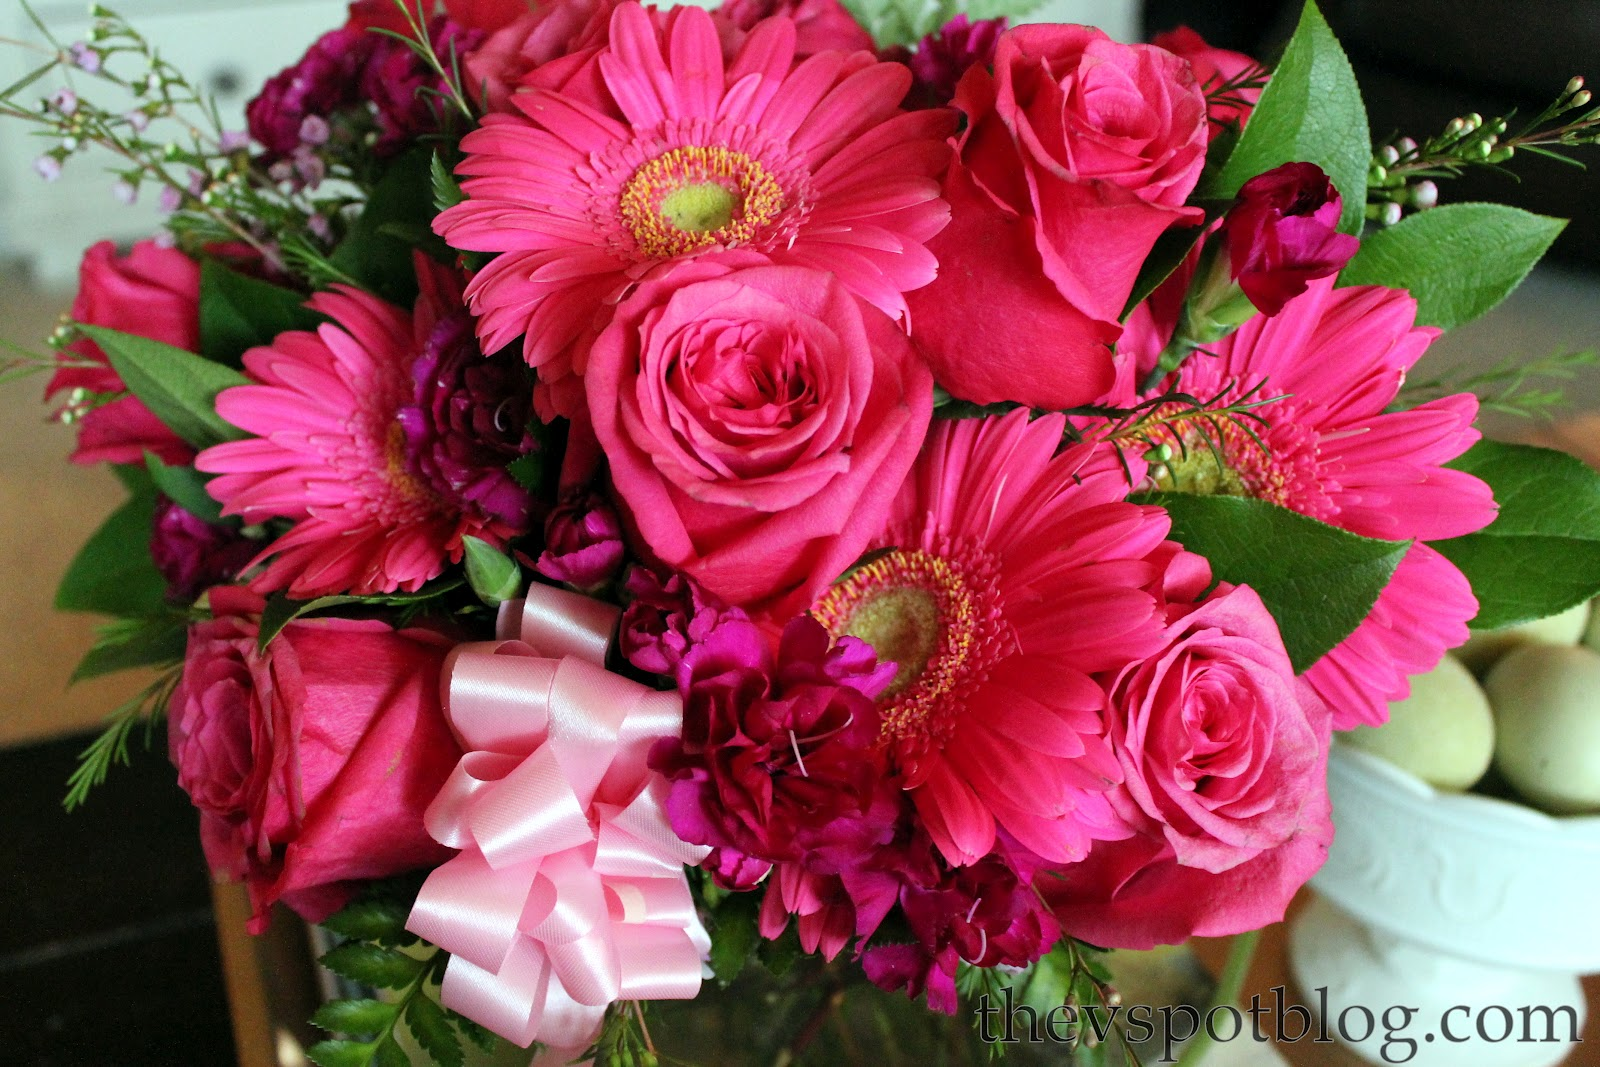 http://3.bp.blogspot.com/-C_1Hd_H2KEA/T6MP990s4BI/AAAAAAAAHXA/hm3uZVNIM34/s1600/Better+Homes+and+Gardens,+FTD+florist,+flowers,+pink+roses,+gerber+daisy.jpg#roses%20for%20nice%20people%201600x1067